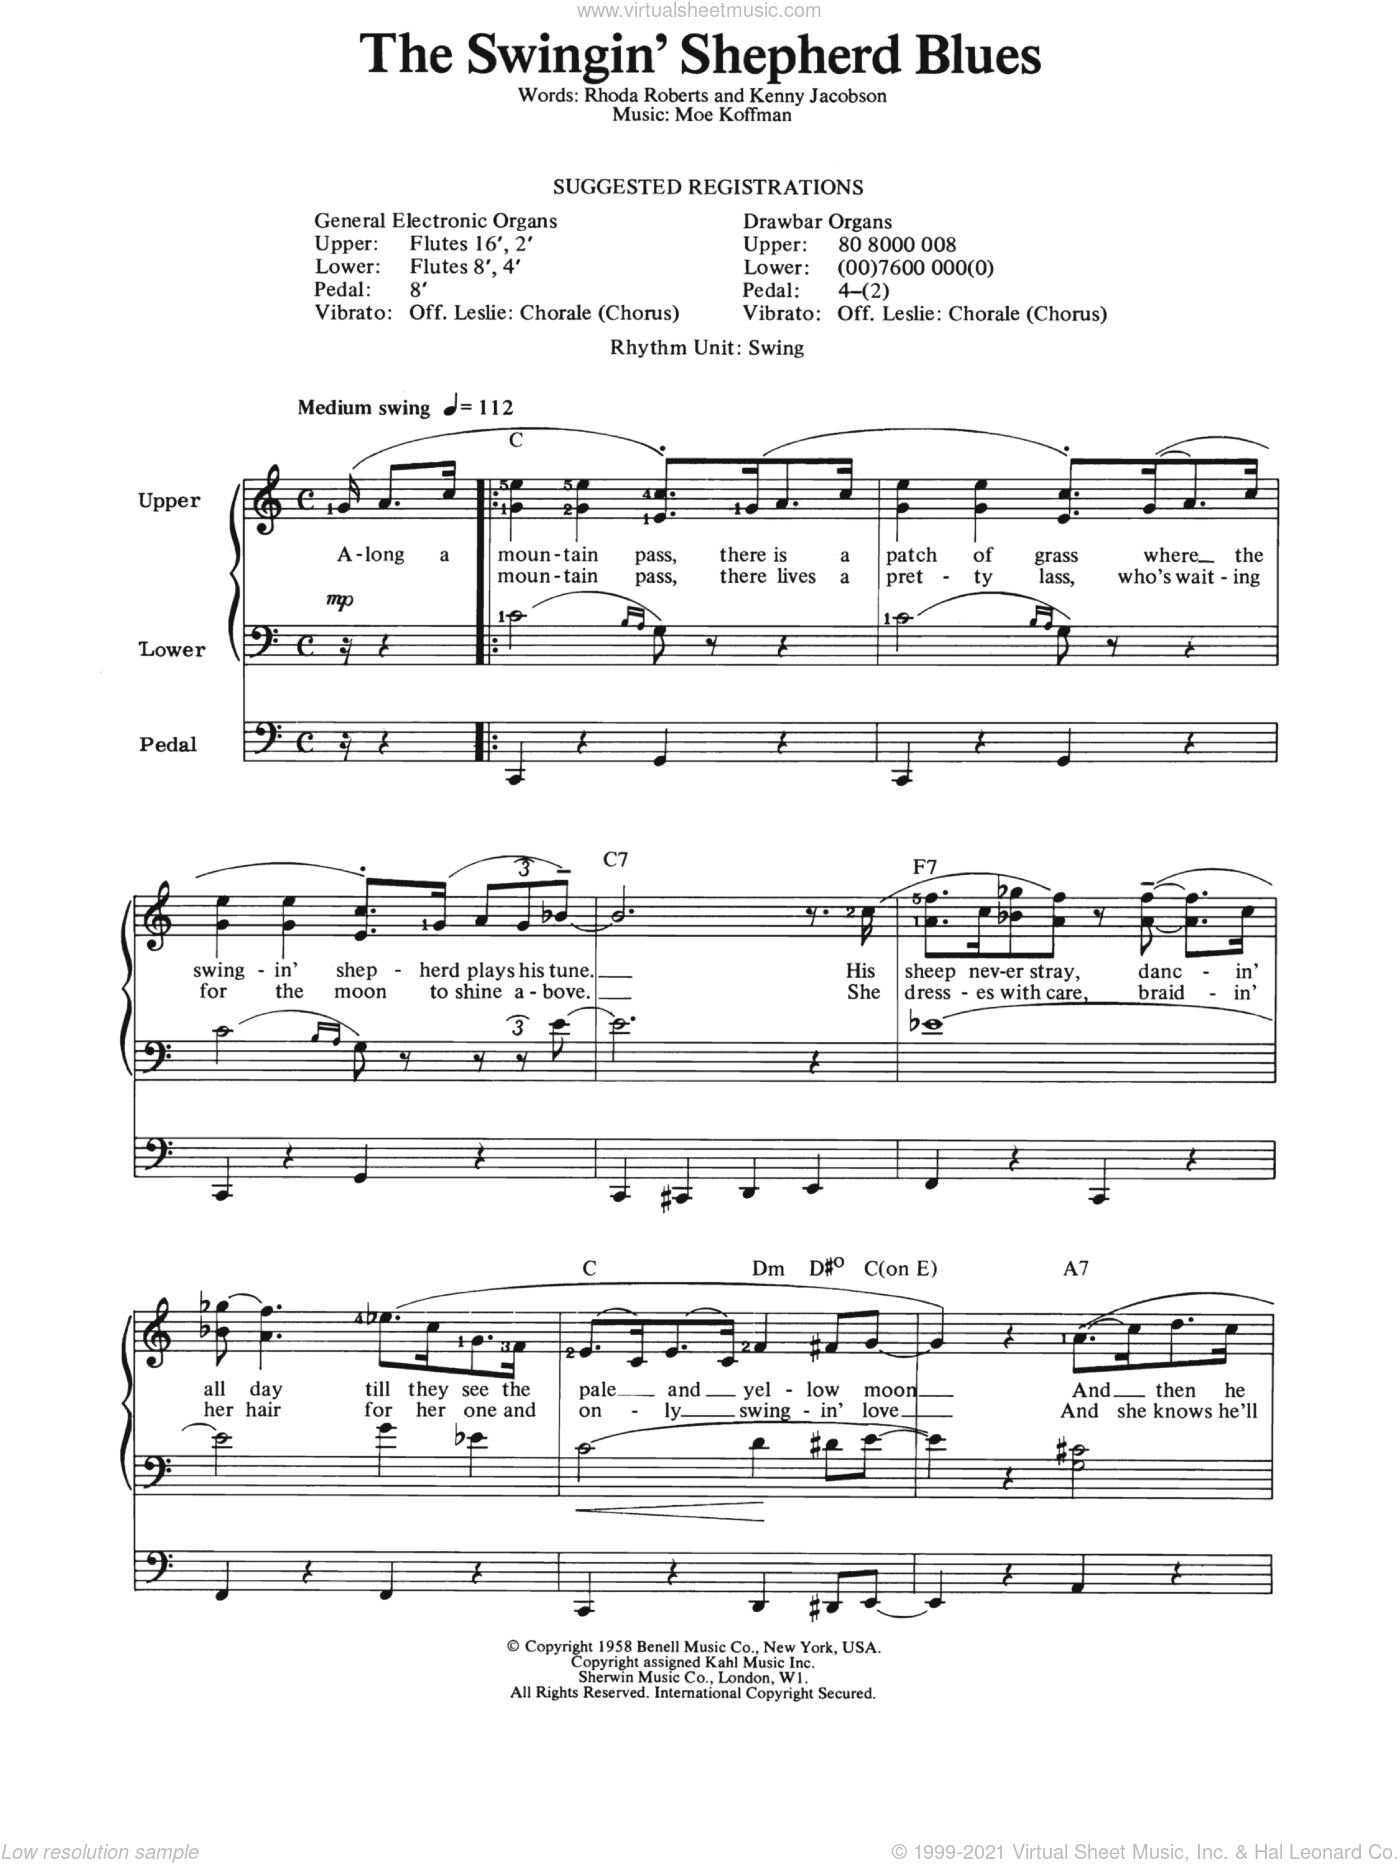 Swingin' Shepherd Blues sheet music for organ by Moe Koffman, intermediate. Score Image Preview.